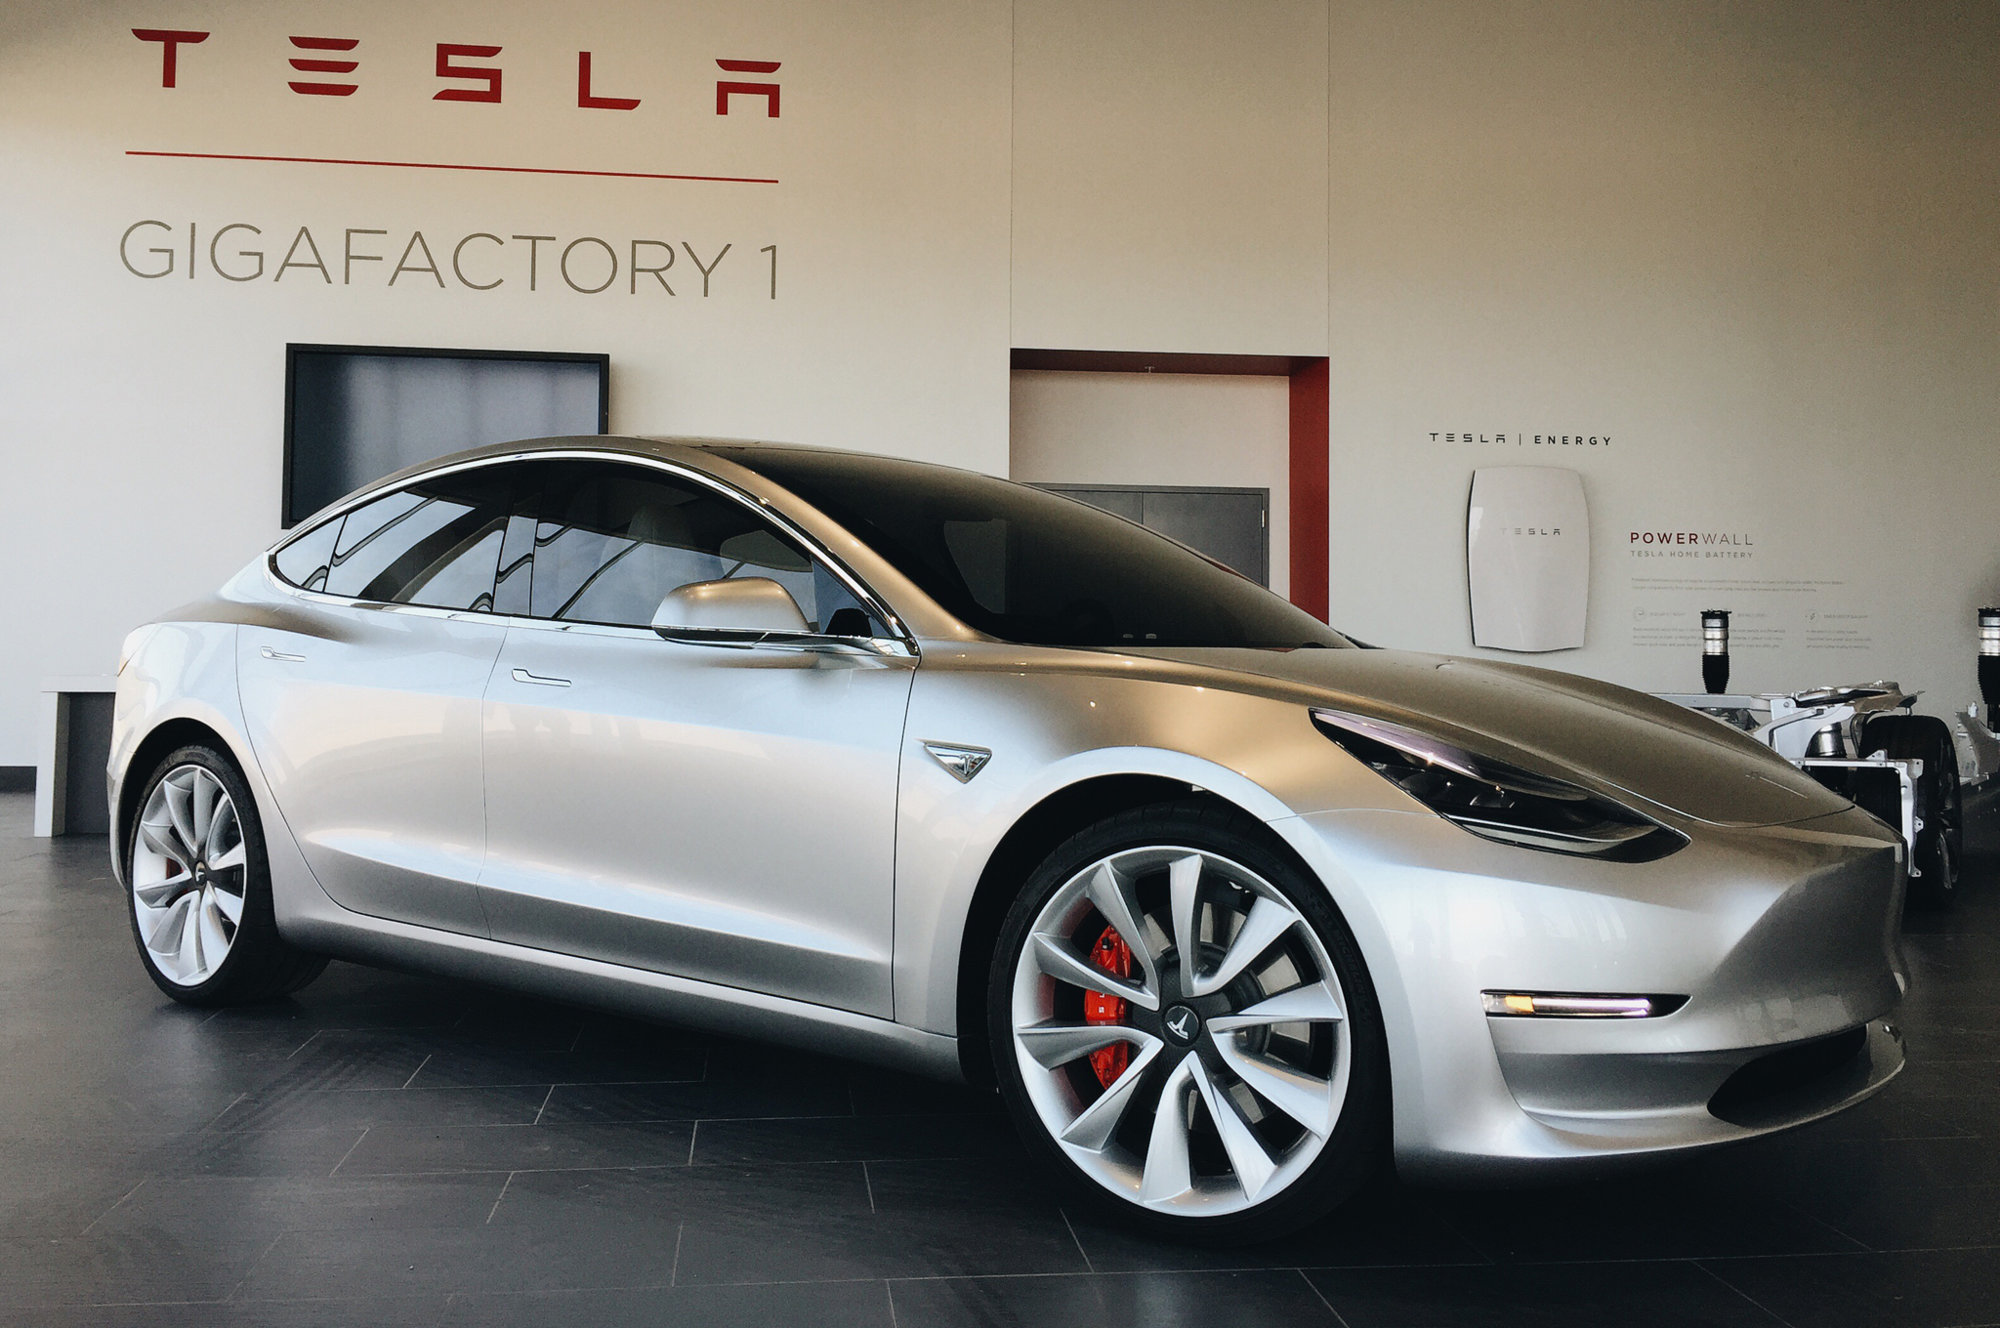 Tesla-Model-3-at-Gigafactory-1.jpg